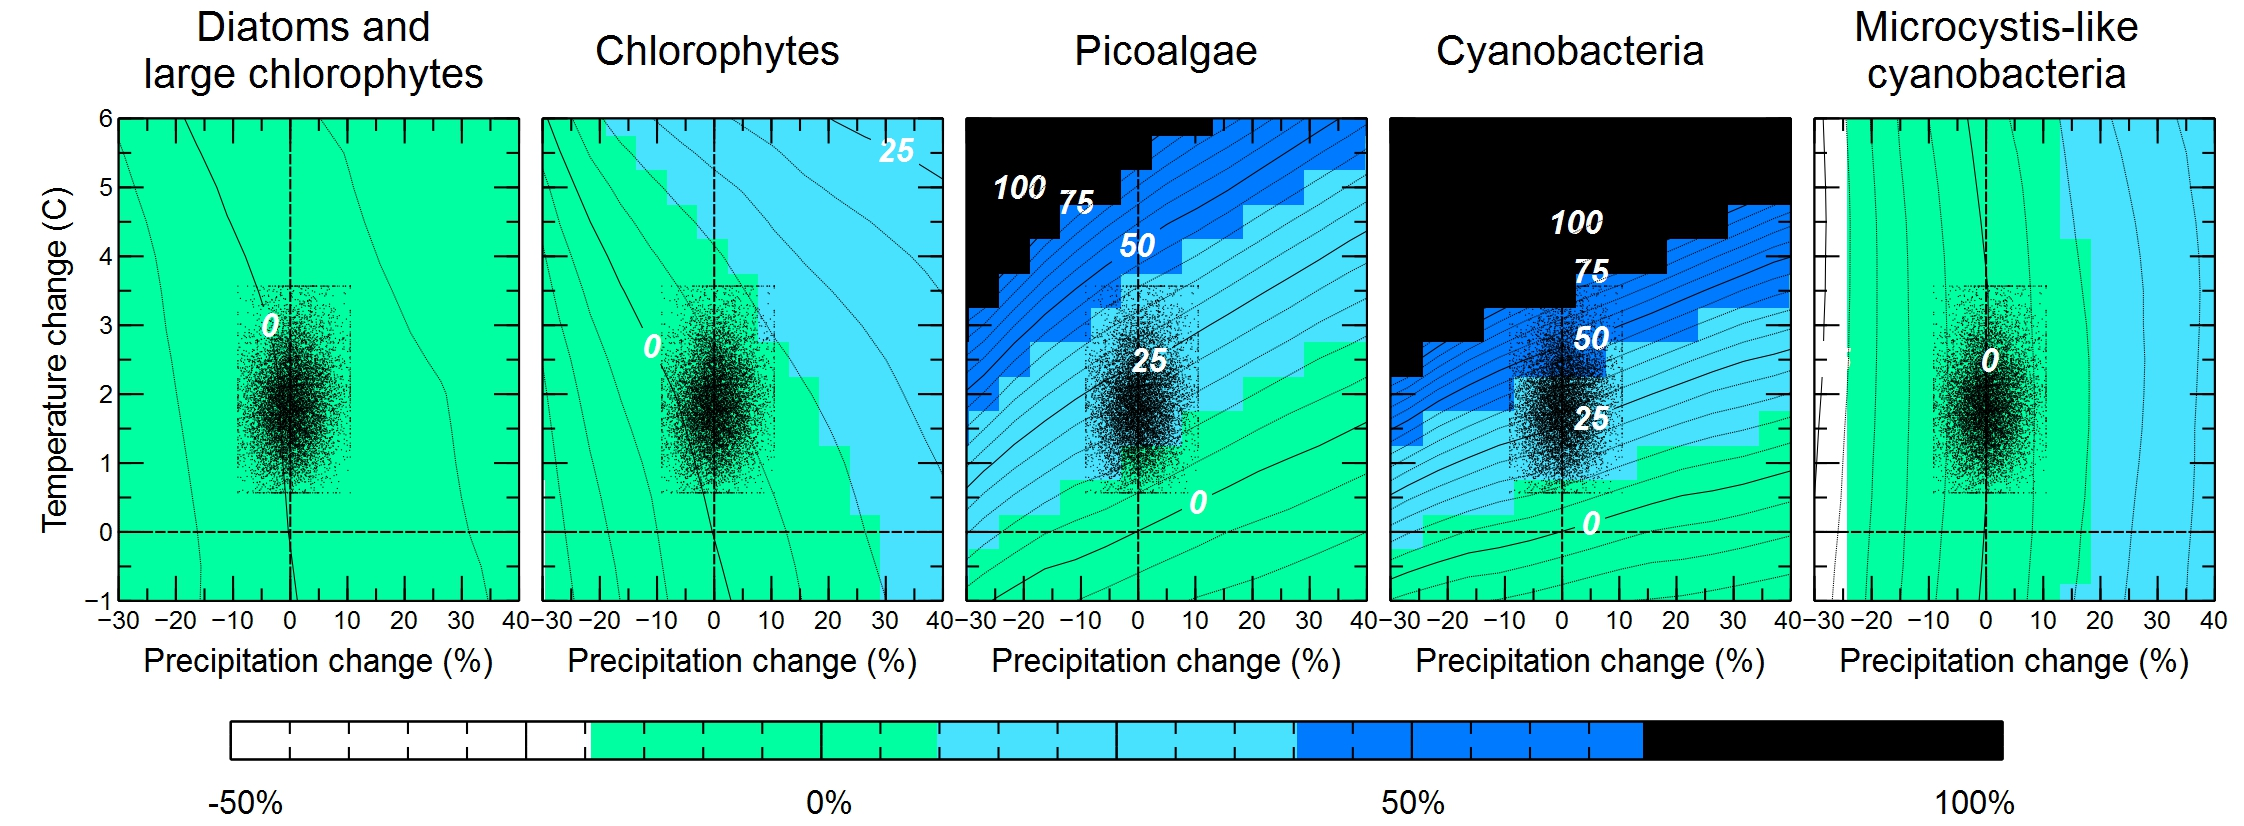 Change in the average phytoplankton abundance in the River Thames (UK) in reach 1 due to climate alteration (precipitation and temperature), under current conditions of land-use and current phosphorus removal mitigation strategies. In each plot, the x-axis represents the alteration in temperature (°C), the y-axis the alteration in precipitation (%), while the resulting change in average phytoplankton cell abundance is represented with colours. Each plot is associated with a different phytoplankton group (diatoms, chlorophytes, picoalgale, cyanobacteria and Microcystis-like cyanobacteria). The black dots represent the changes in precipitation and temperature of 10,000 UKCP09 change factors.